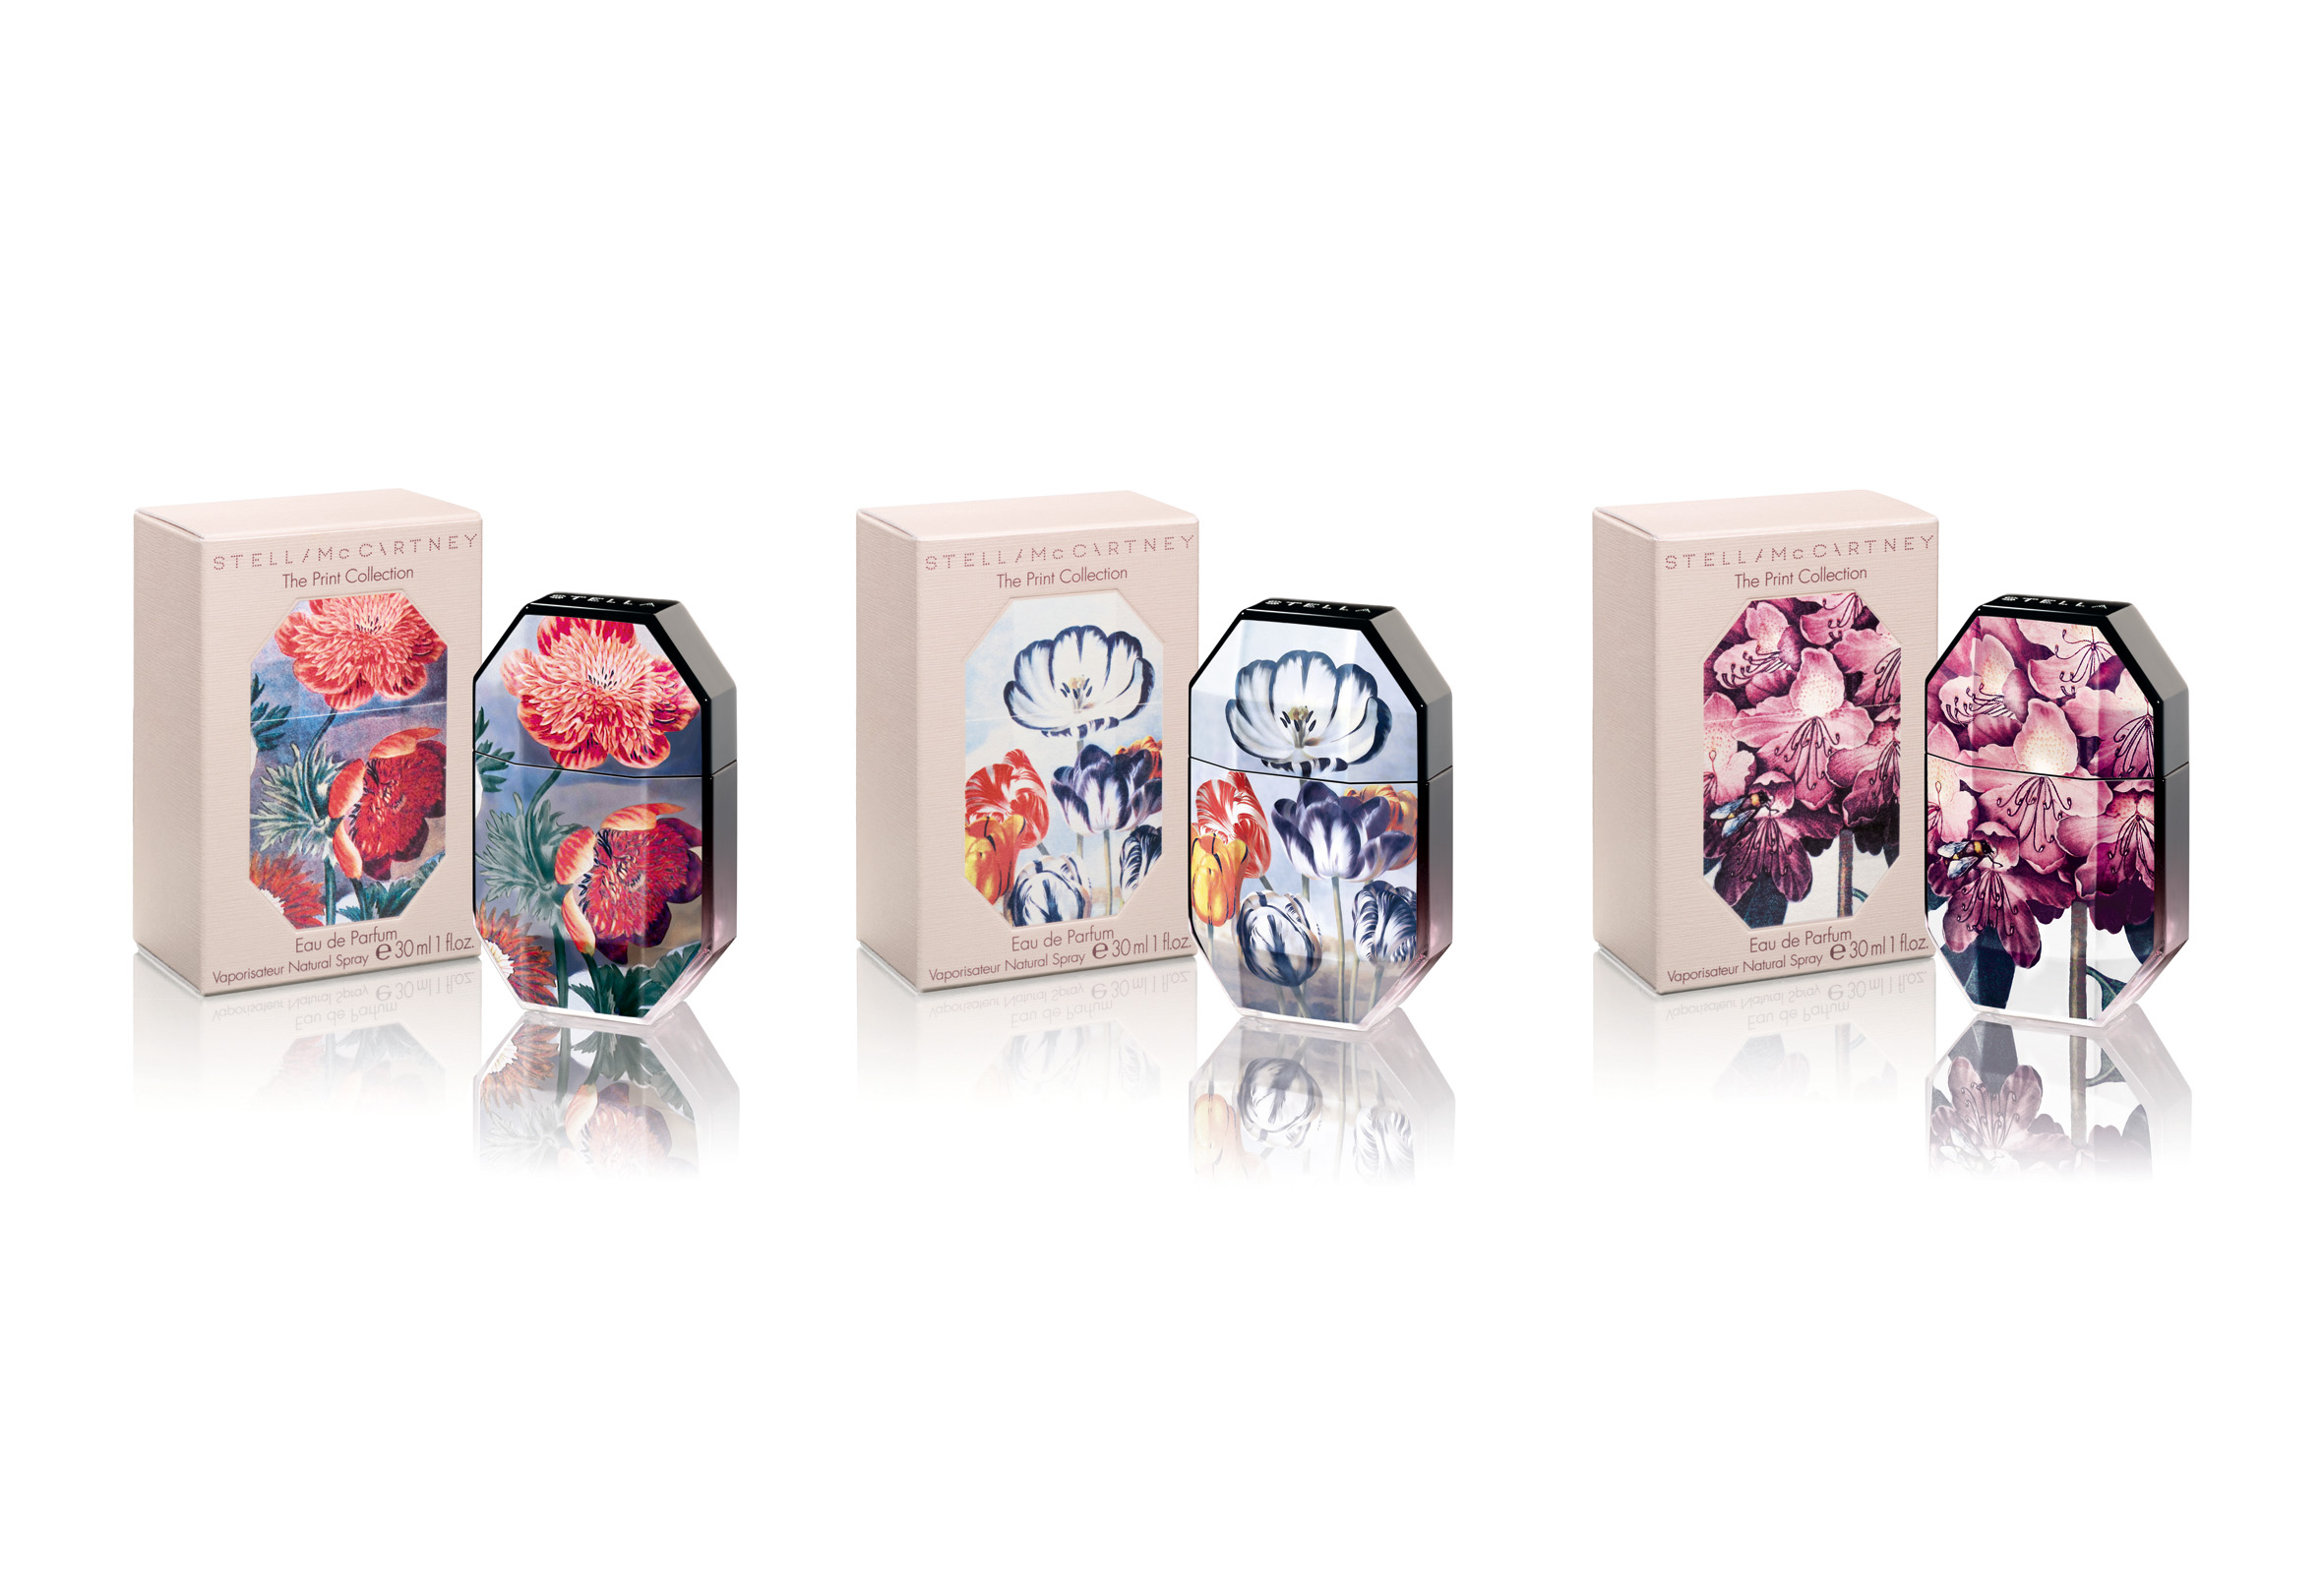 "Stella Mccartney Perfume Print Collection Print Collection"" Perfumes"